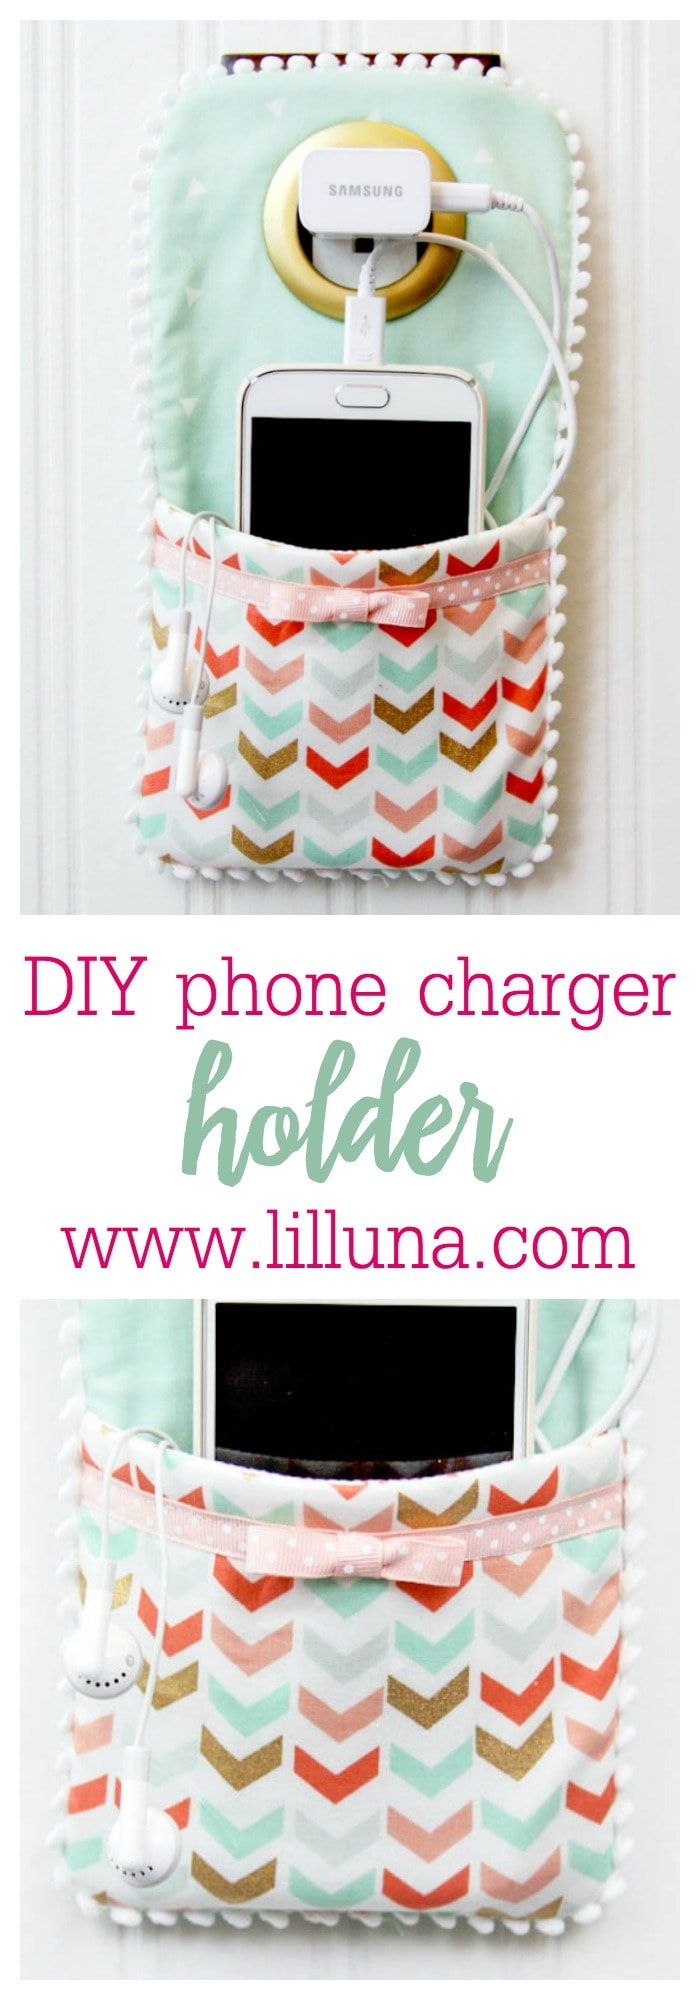 Diy Phone Charger Holder Watermelon Wallpaper Rainbow Find Free HD for Desktop [freshlhys.tk]